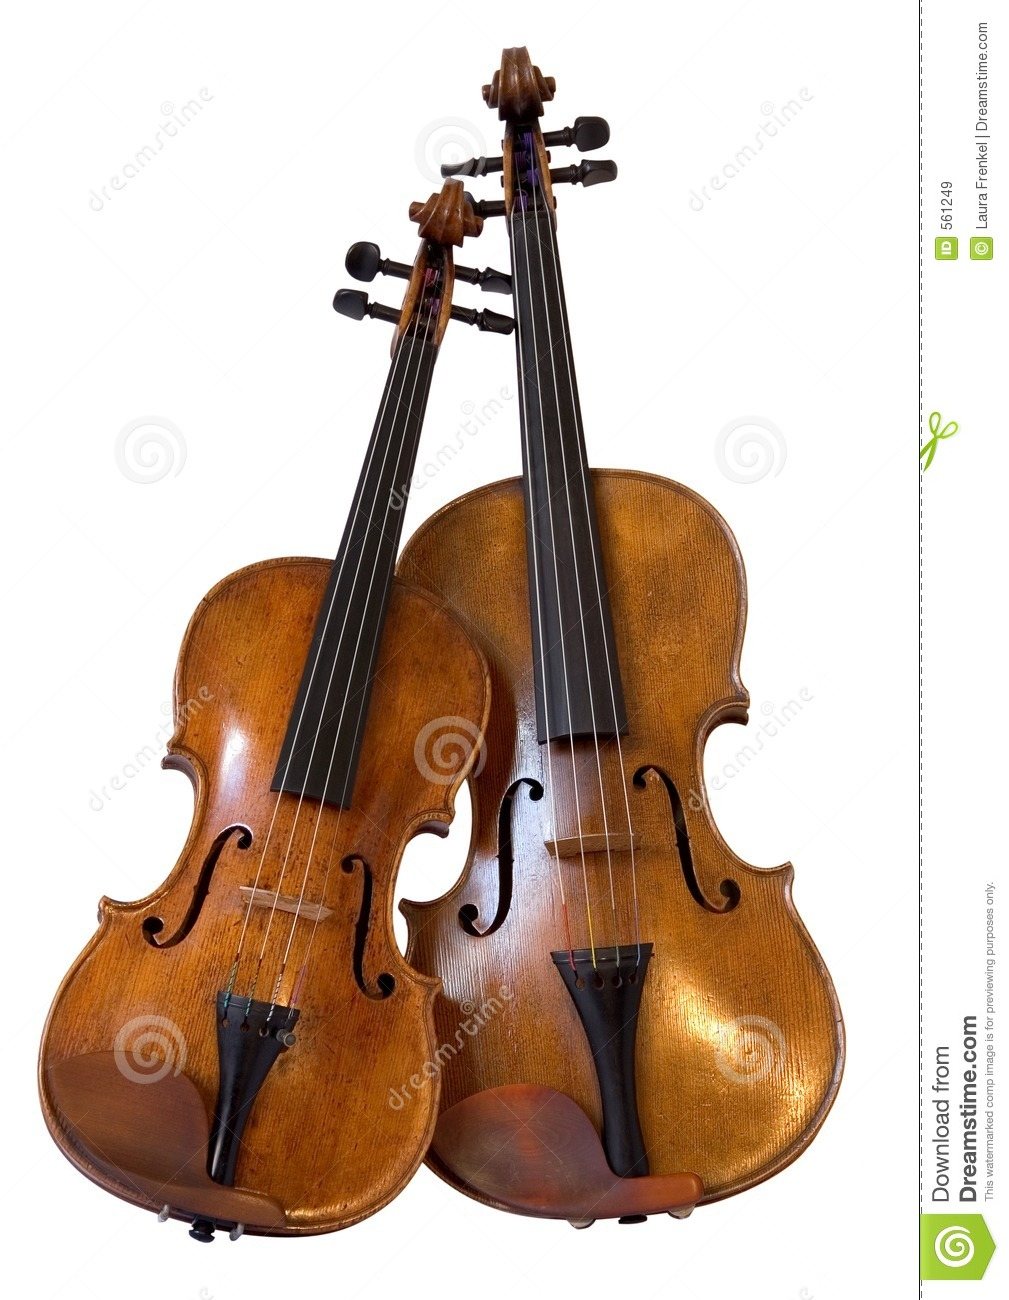 Violin and viola the subtle similarities